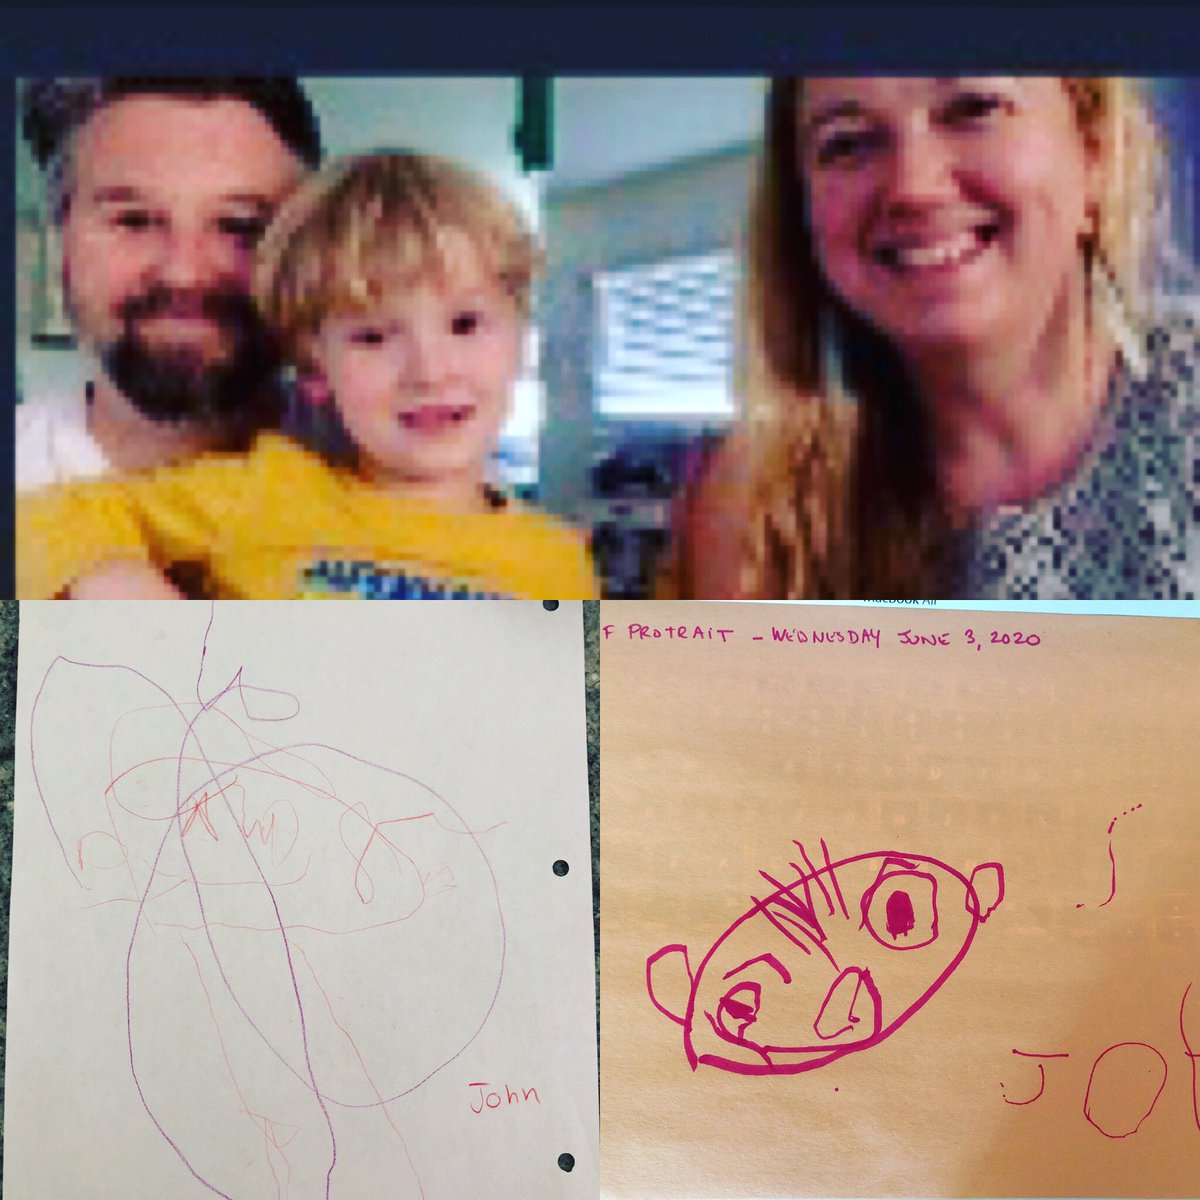 So thankful for our @PaloAltoUnified Preschool Family teachers & staff  Check out these two self portraits: One done in-class in September & the other at home, following the video instruction from our teachers.  If you water them with love, they will grow. #distancelearning pic.twitter.com/an3Oapxn2M